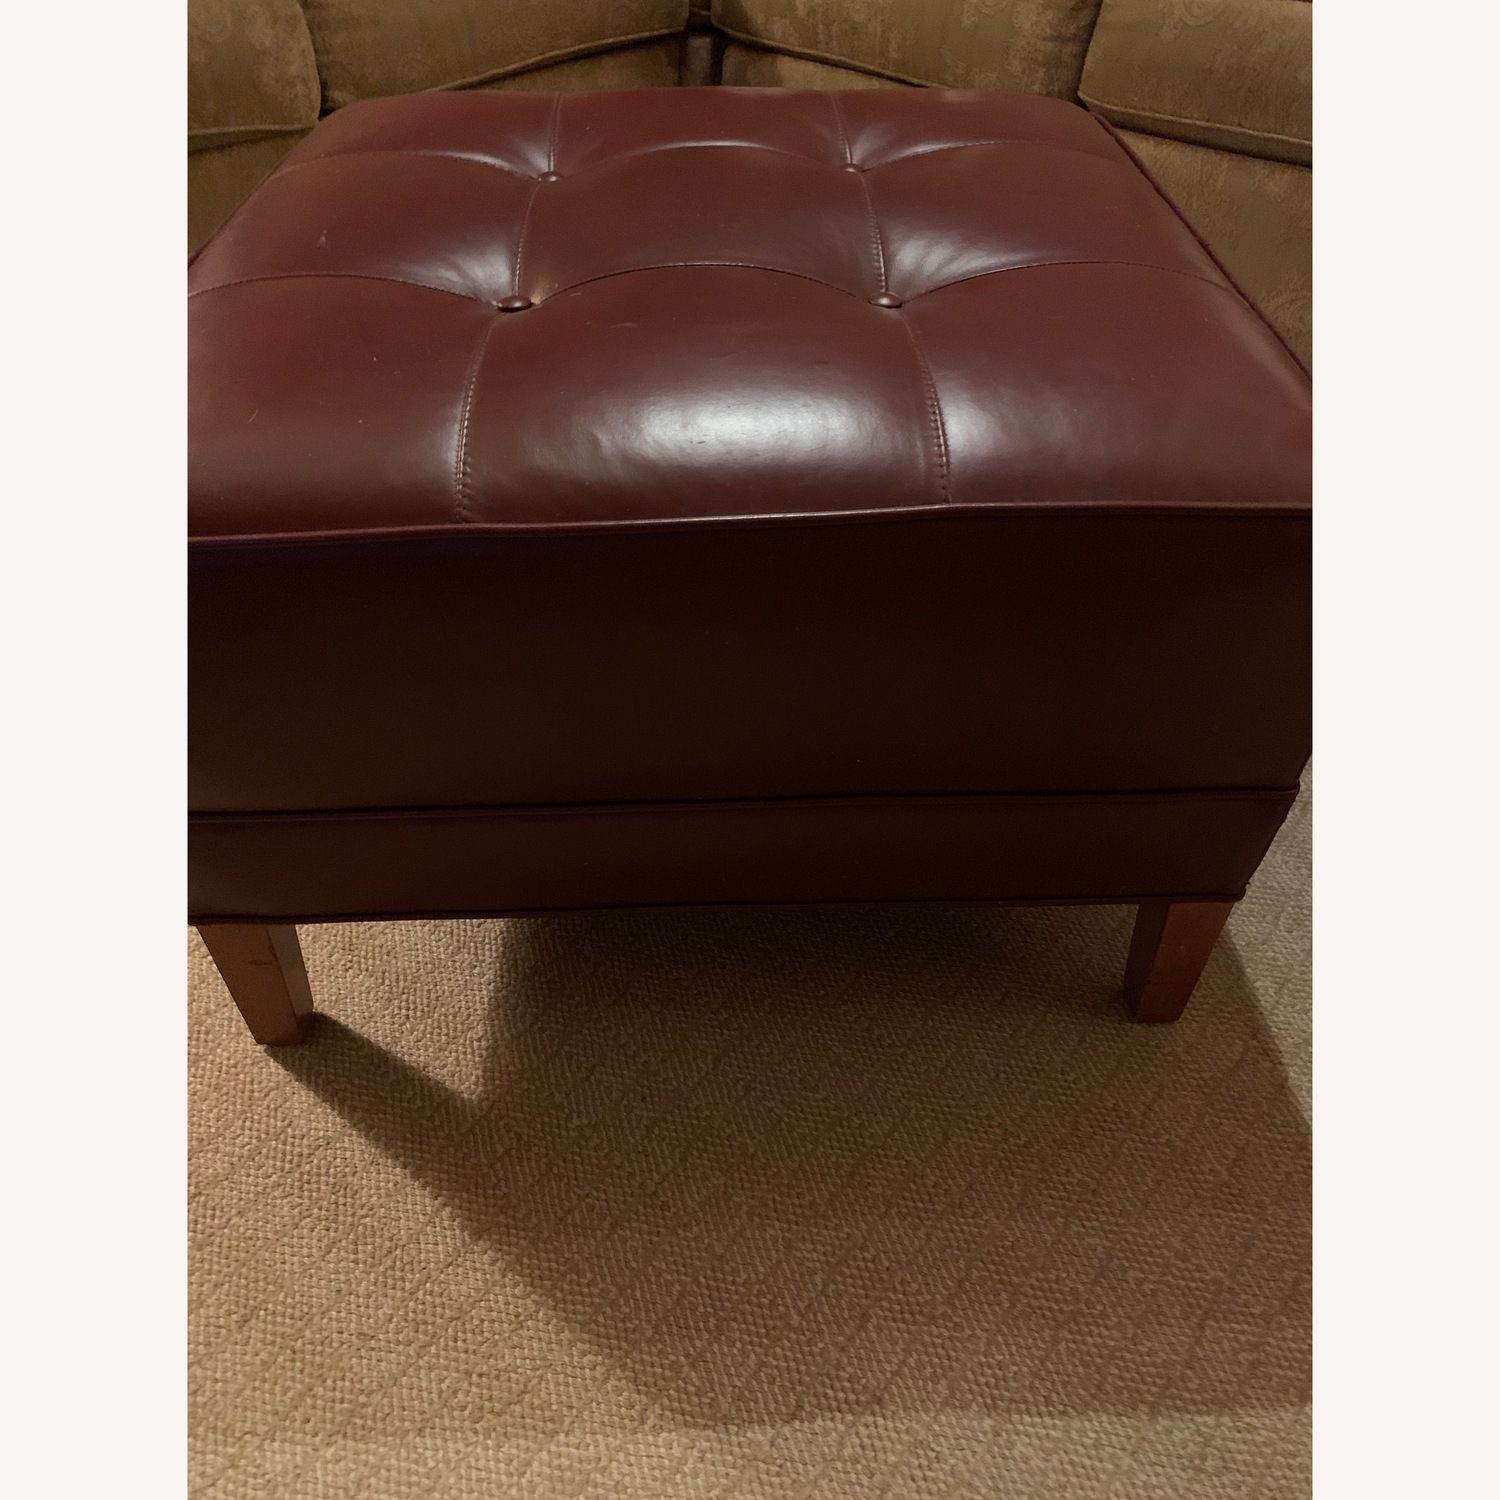 Ethan Allen Burgundy Tufted Leather Ottoman - image-5